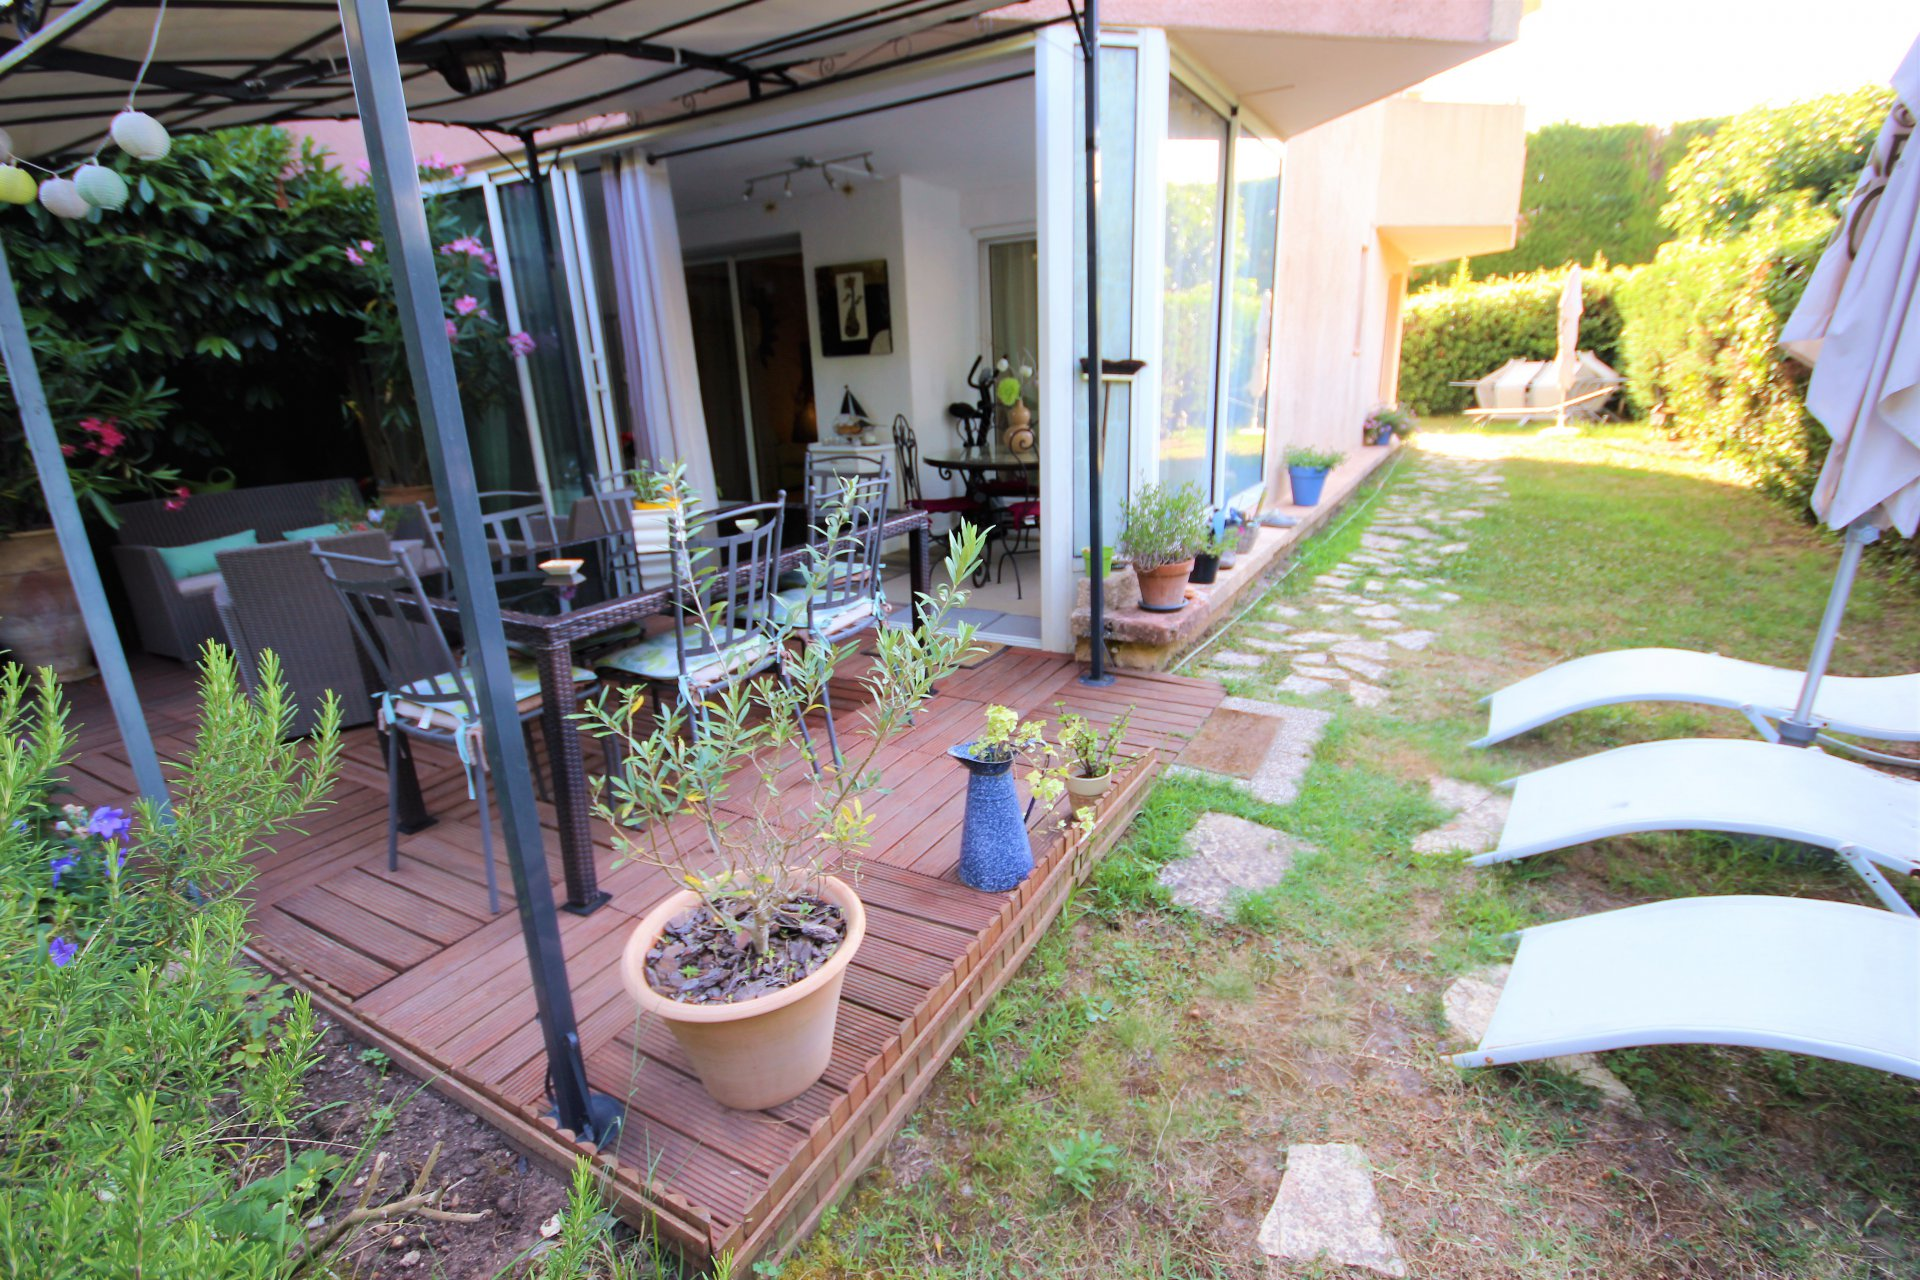 MANDELIEU SALE 3 ROOMS CALM ABSOLUTE RESIDENCE WITH SWIMMING POOL